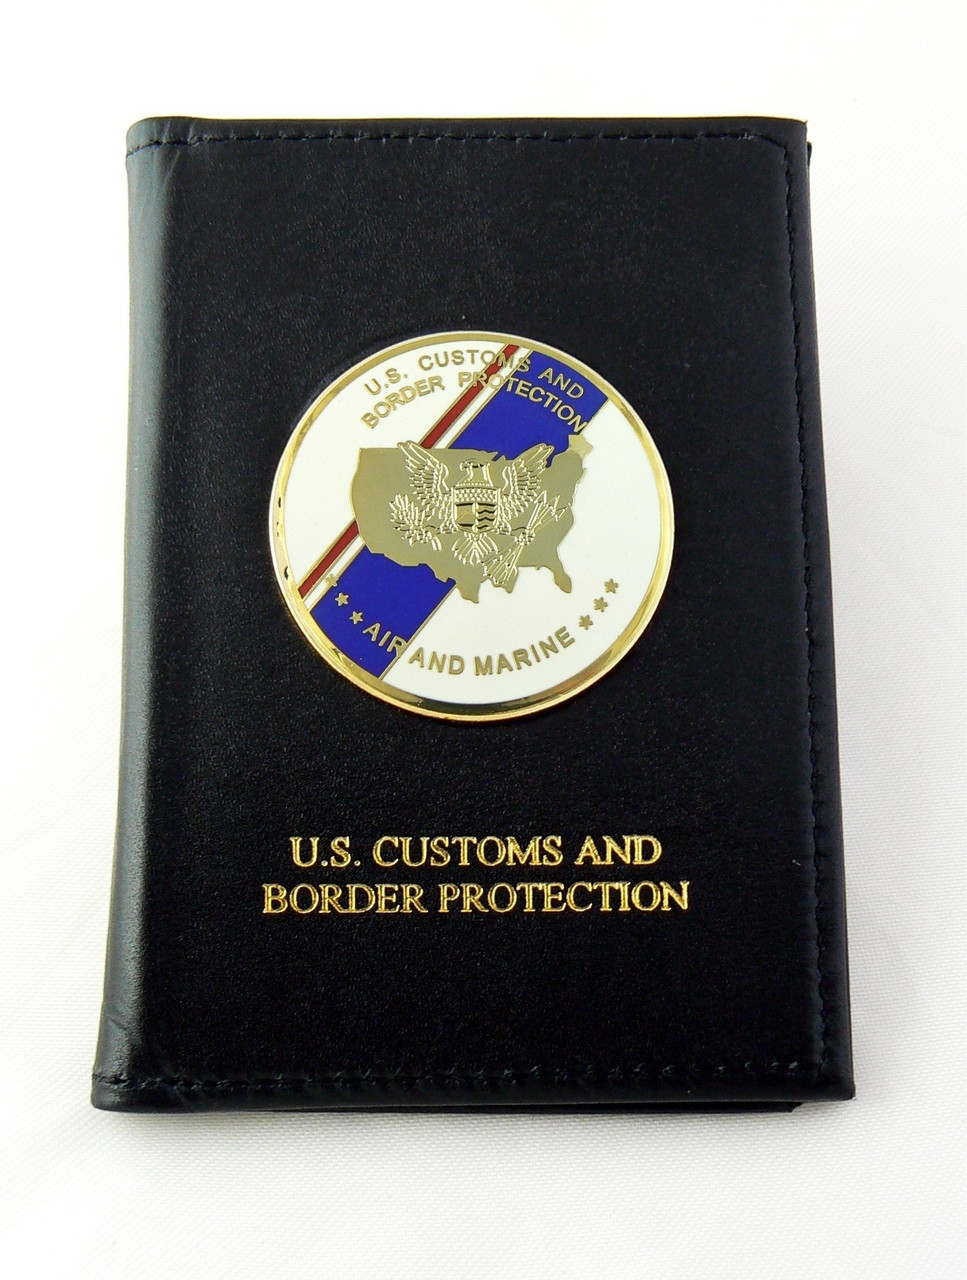 Air and Marine Operations Embossed Dress Leather Badge and Credential id case with Flag Medallion